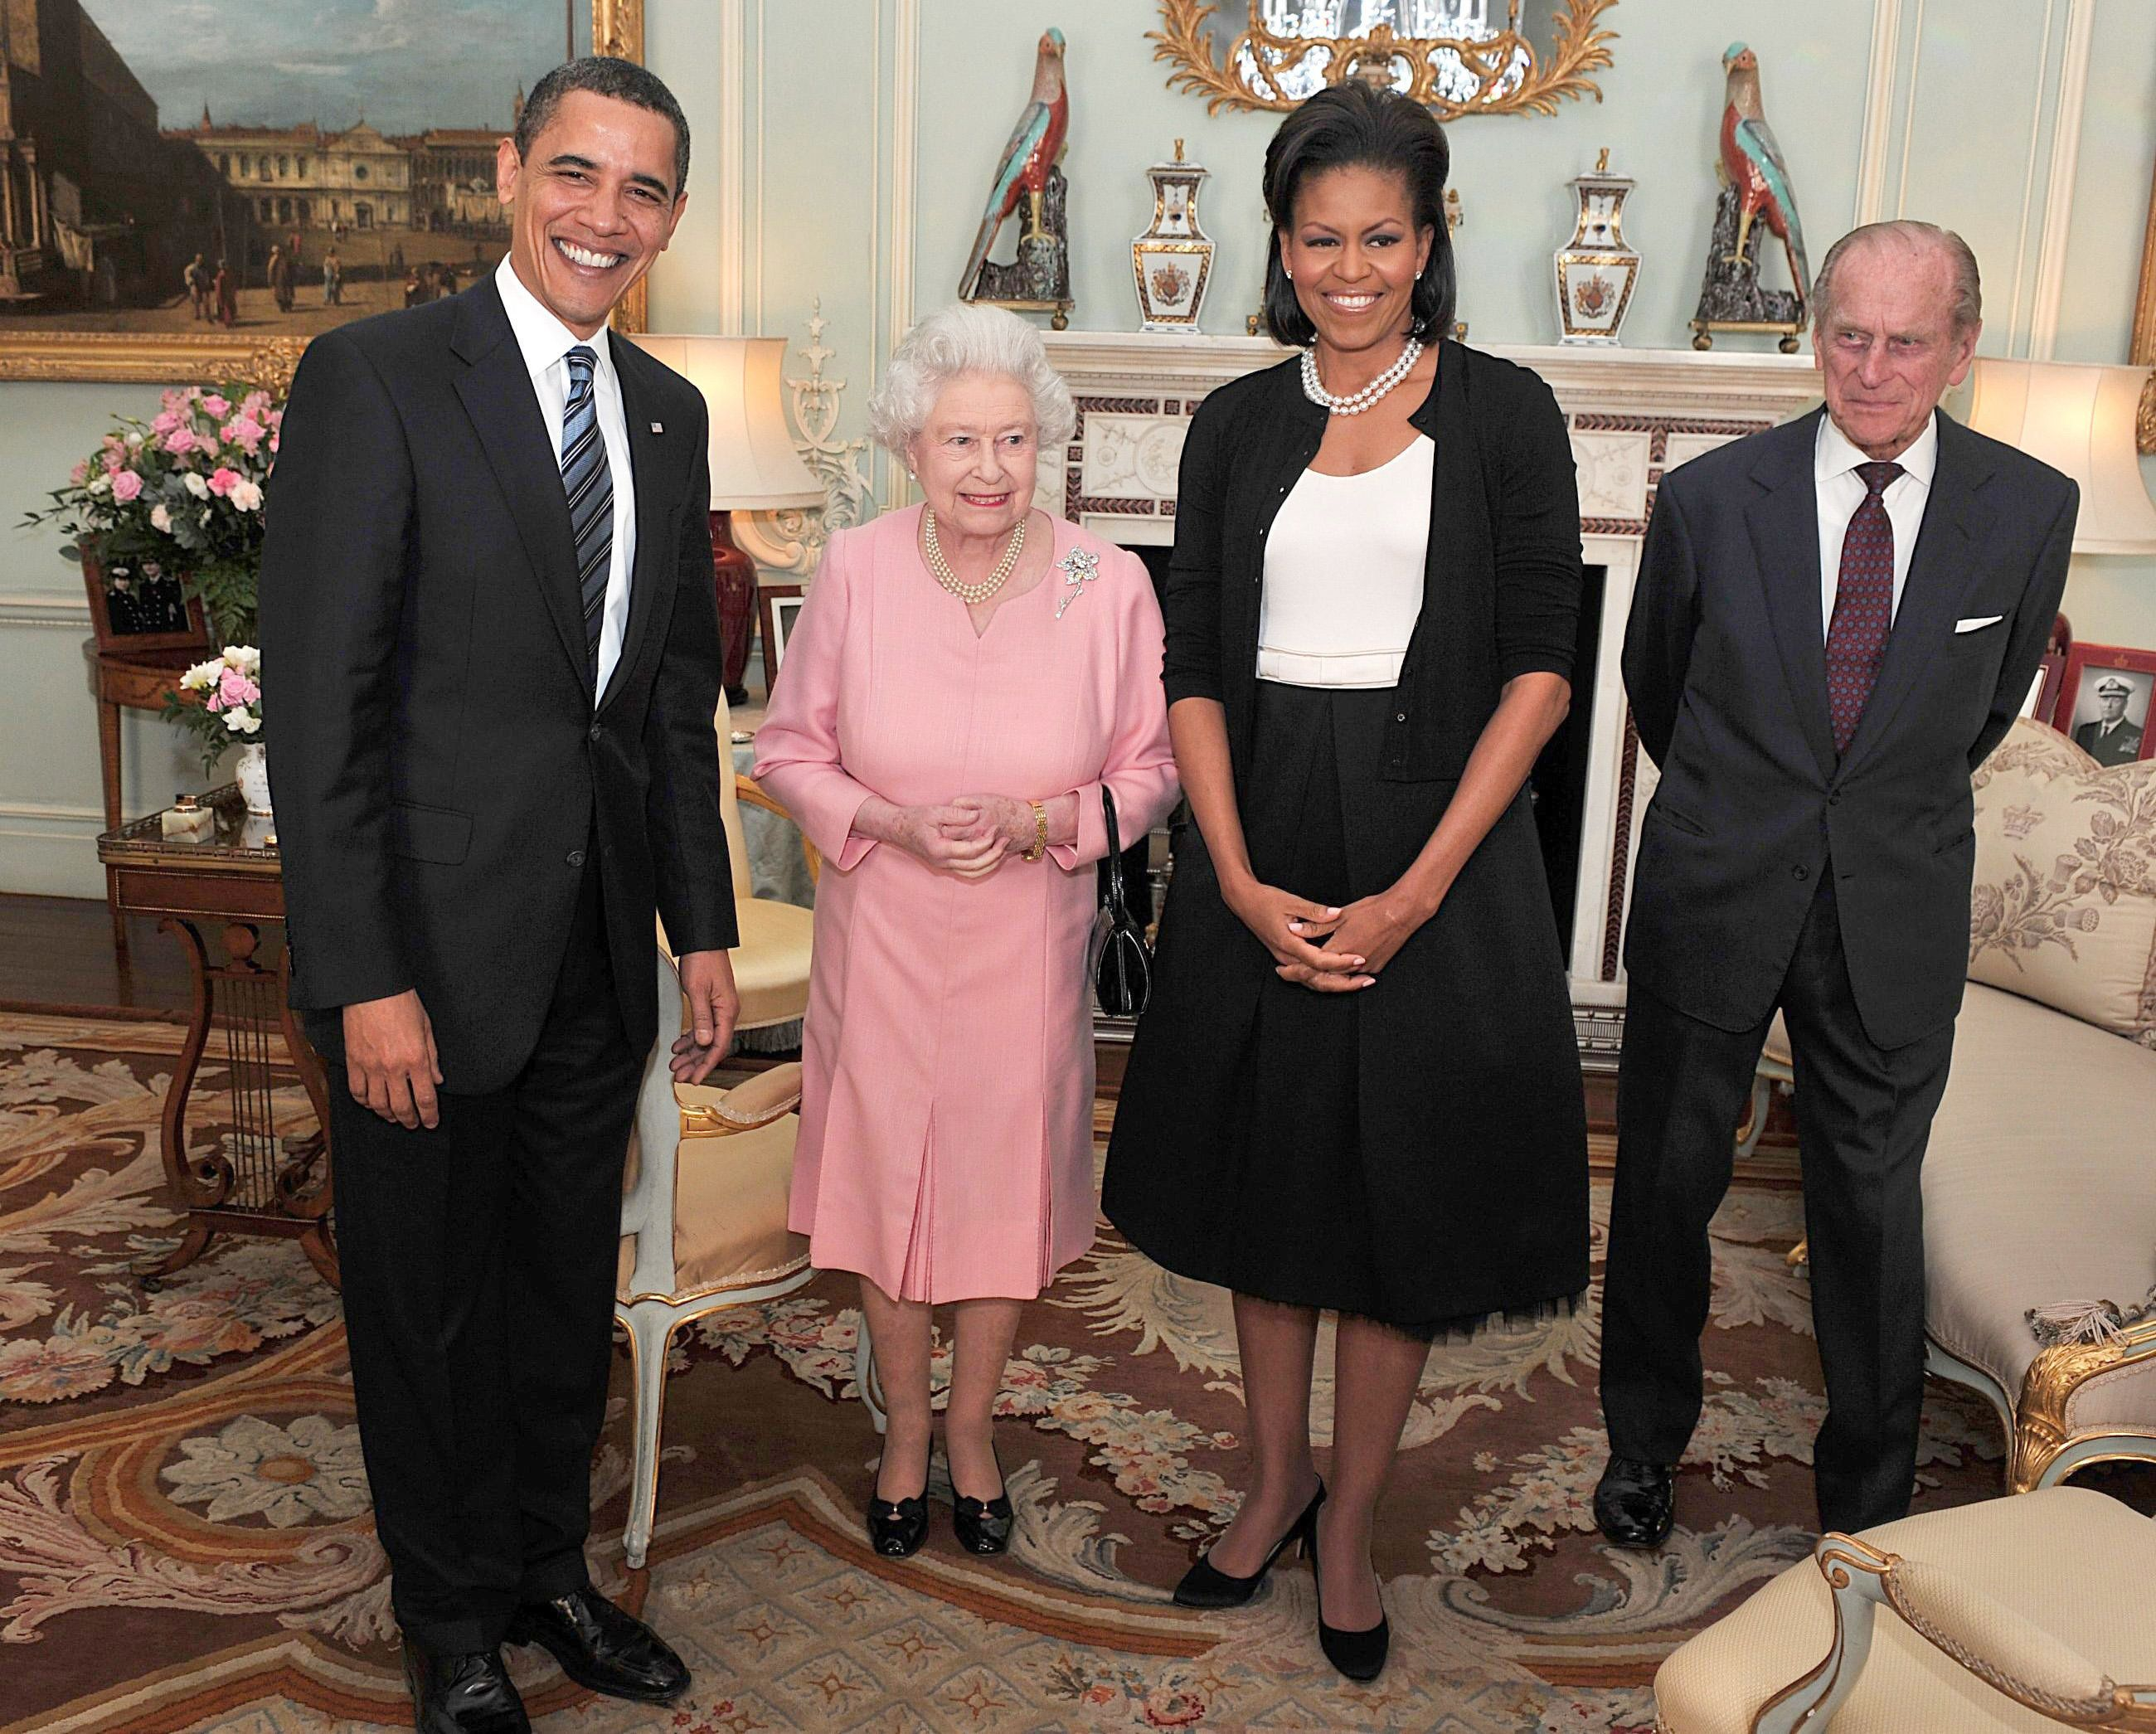 US President Barack Obama and his wife Michelle, pose with Britain's Queen Elizabeth II and Prince Philip, during an audience at Buckingham Palace in London, Wednesday April 1, 2009.(AP Photo/John Stillwell, pool)